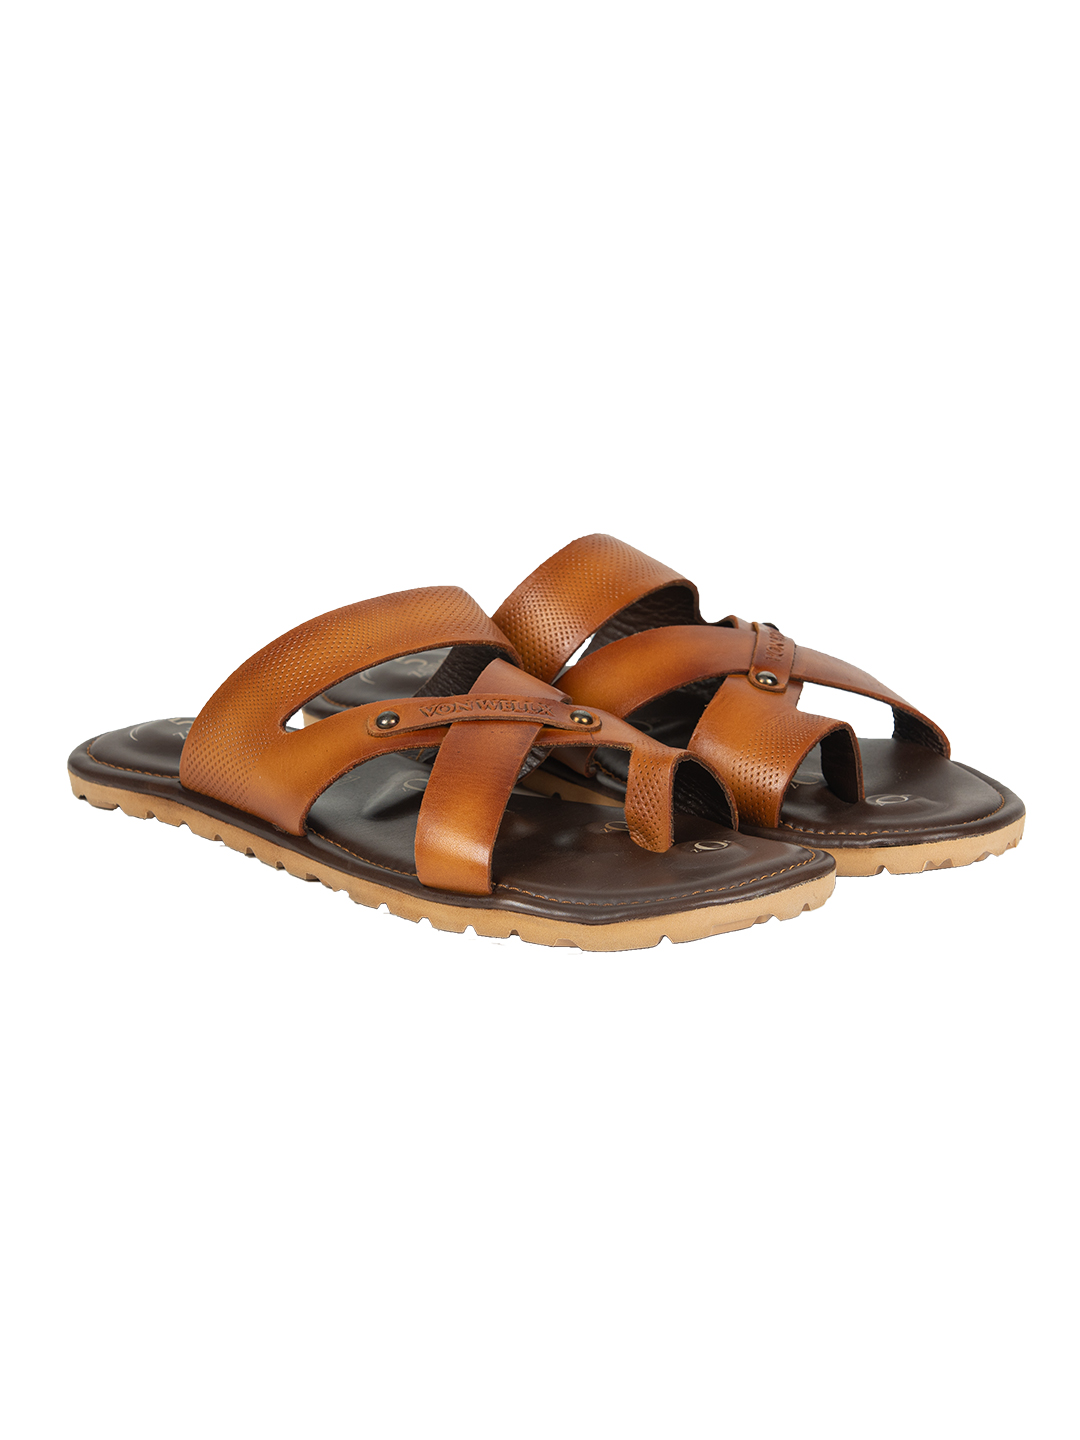 VON WELLX GERMANYCOMFORT TAN ELIJAH SLIPPERS